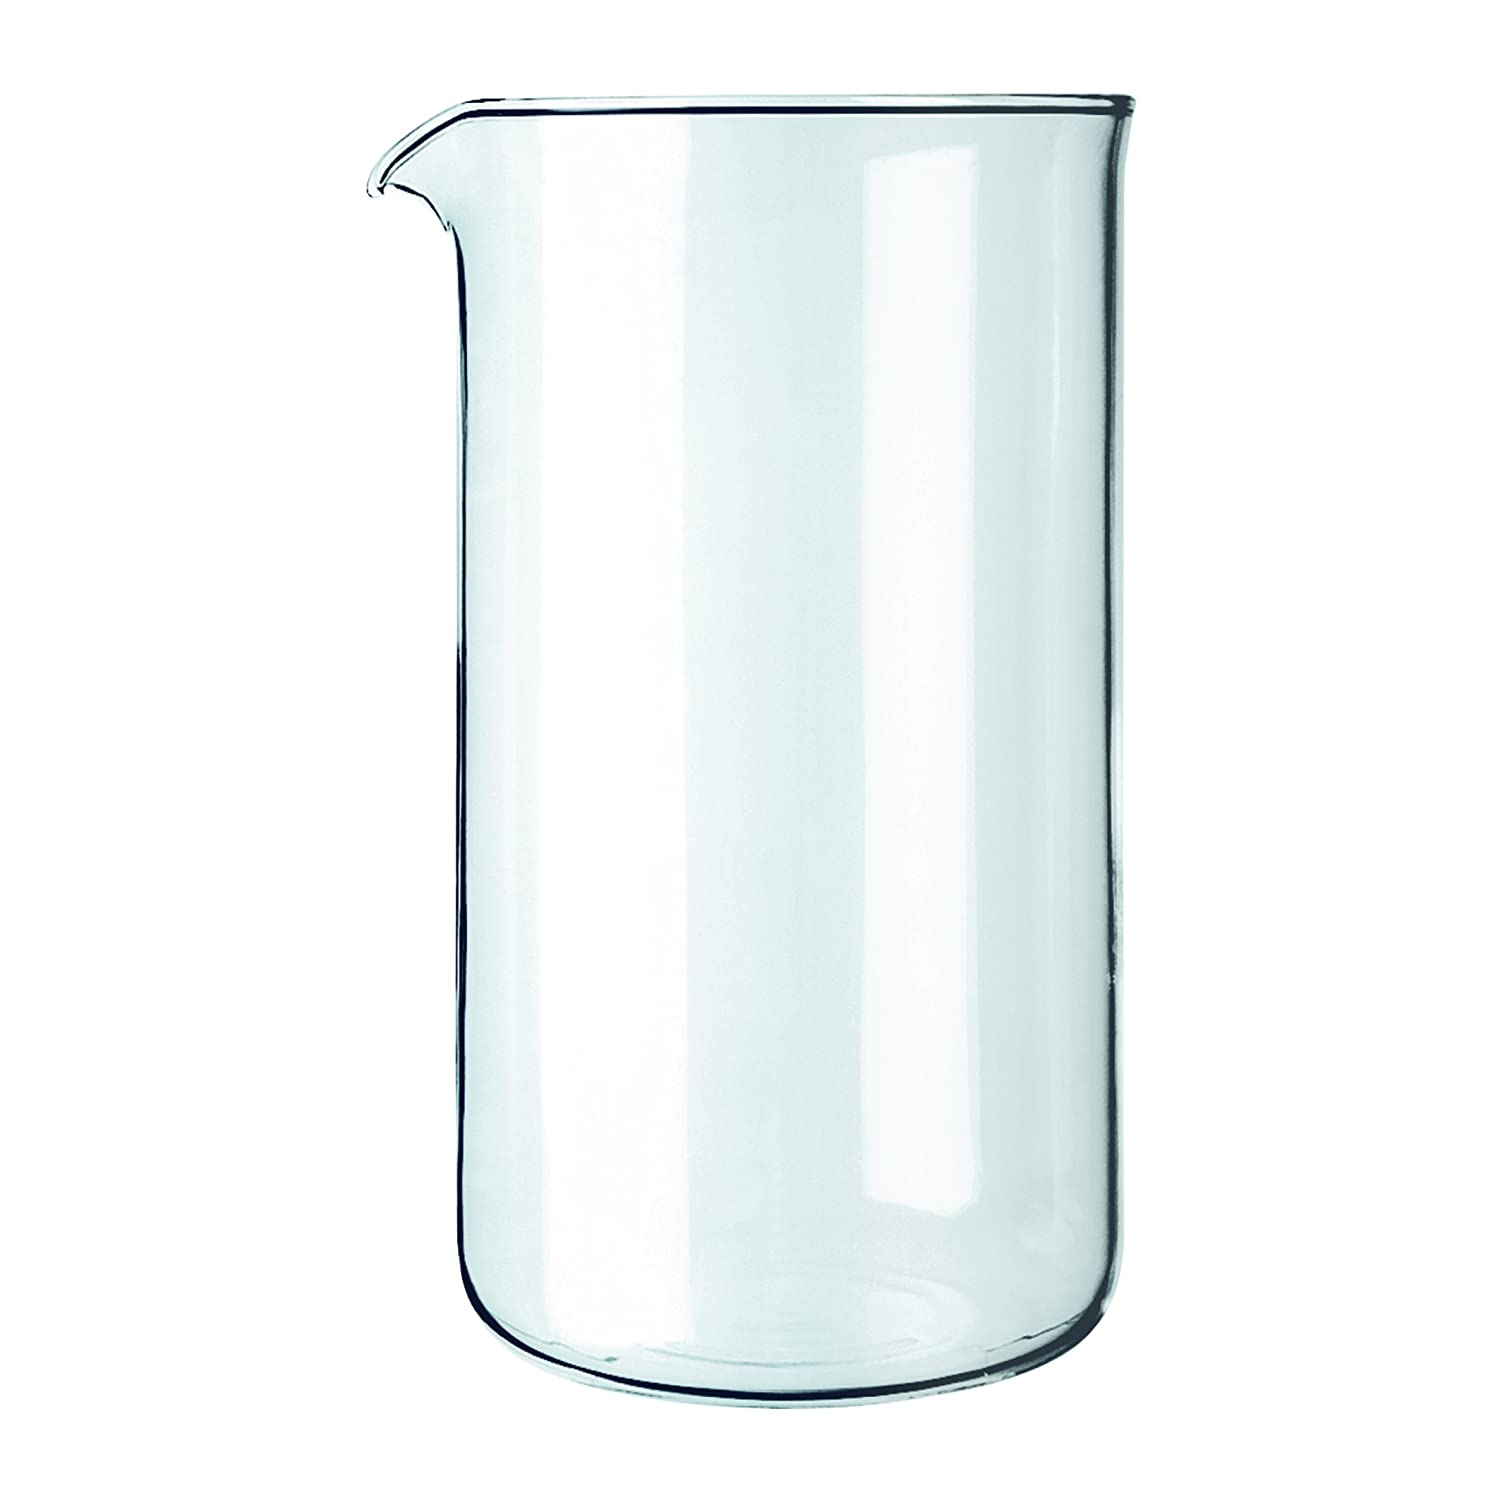 Bodum Spare Beaker/Glass with Spout for Coffee Makers Transparent 1503-10